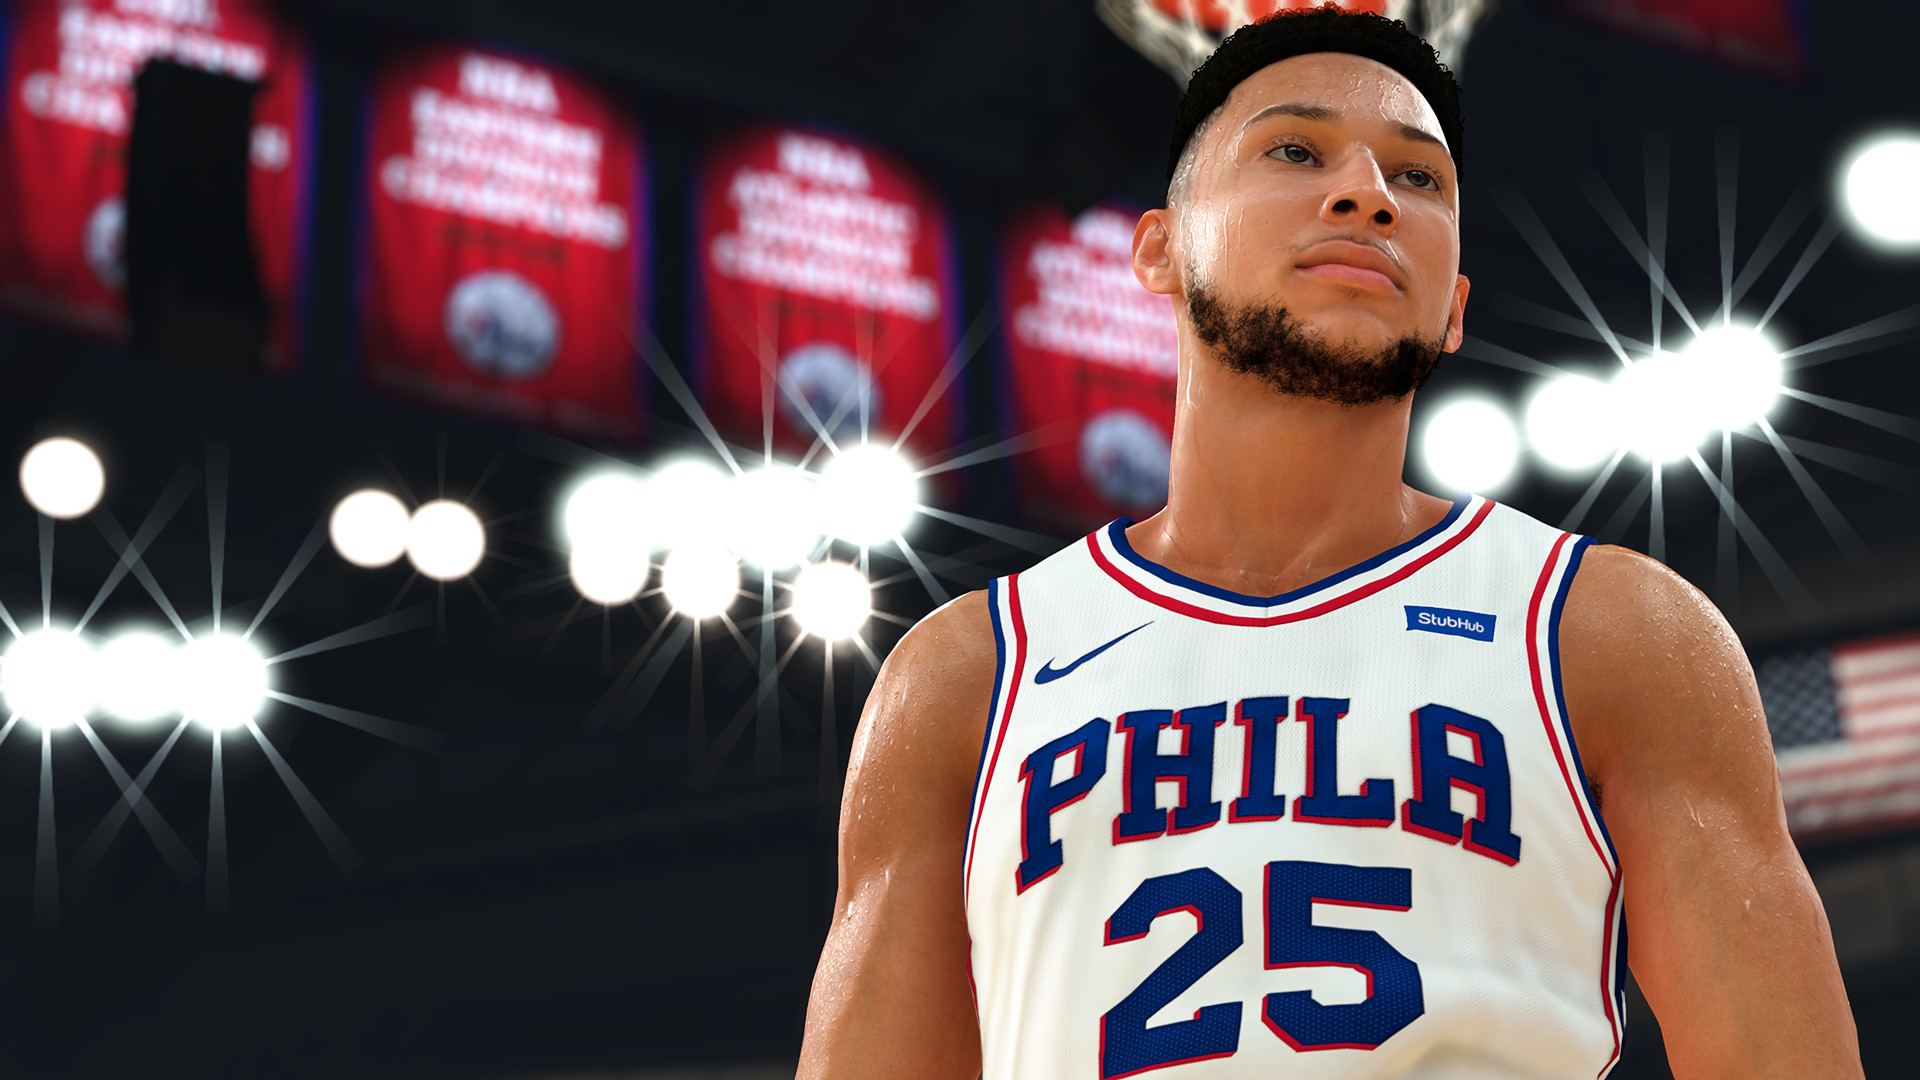 NBA 2K19 on Steam